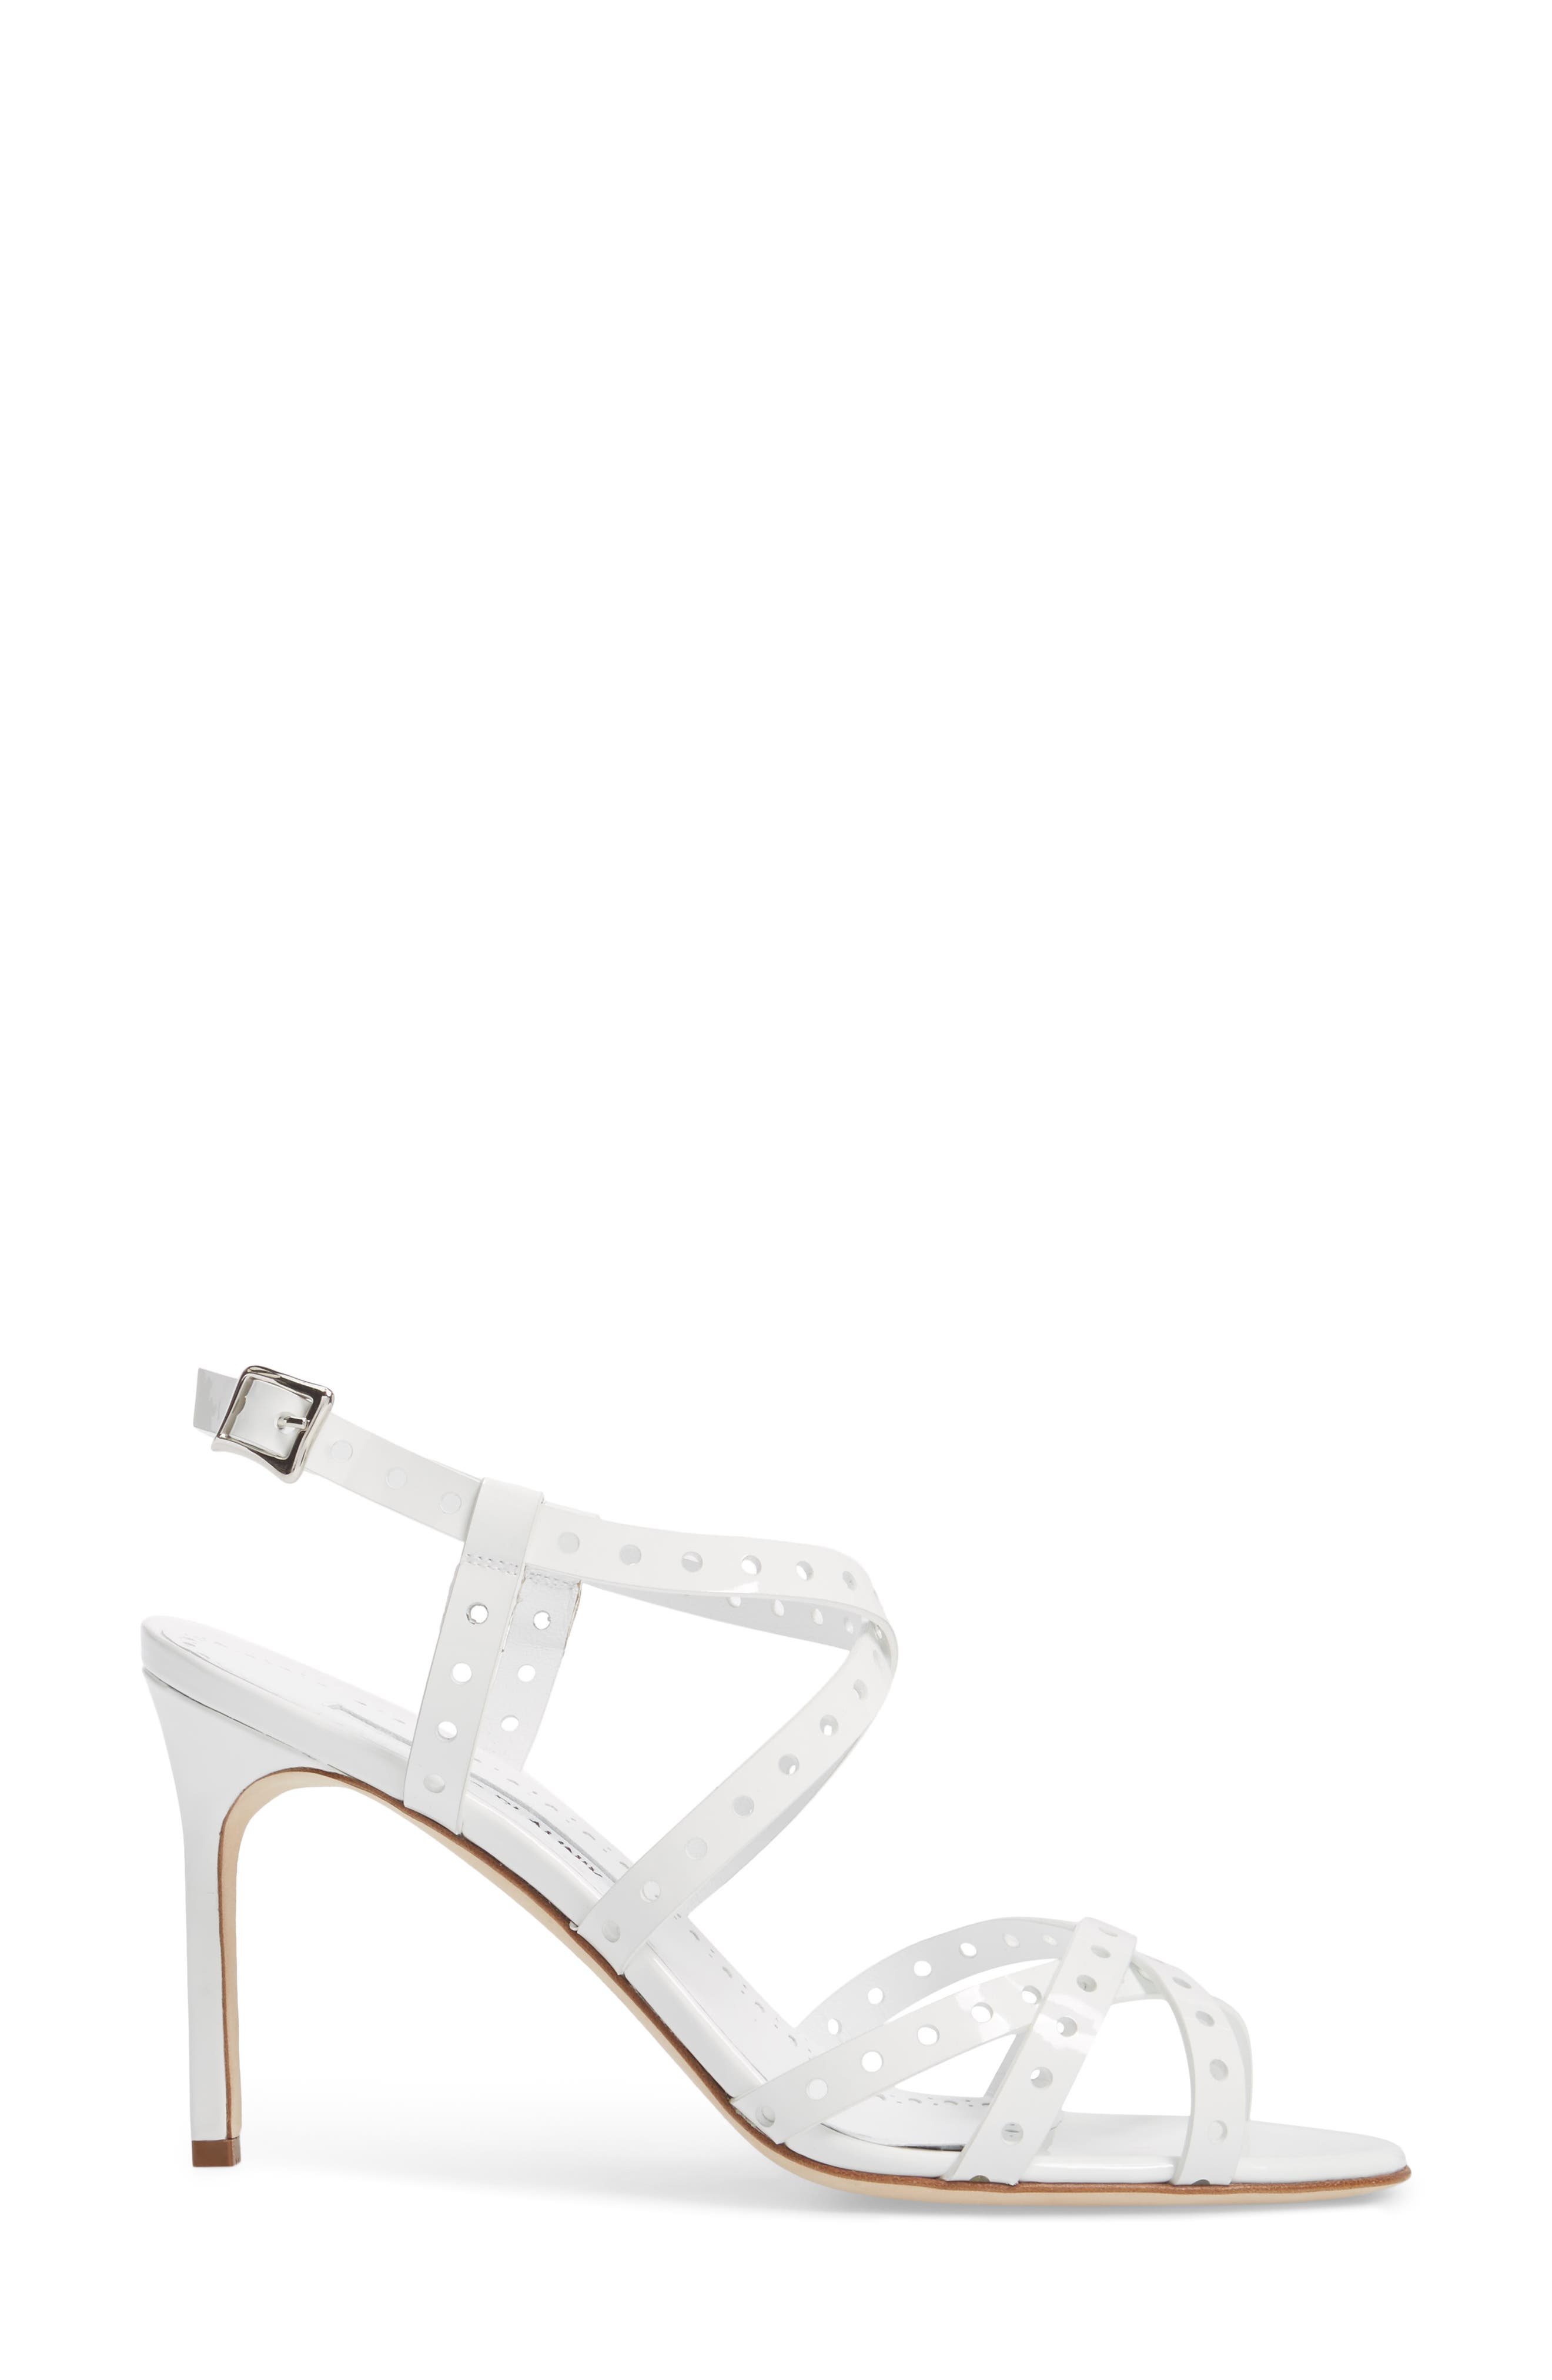 Alternate Image 3  - Manolo Blahnik Demure Perforated Strappy Sandal (Women)